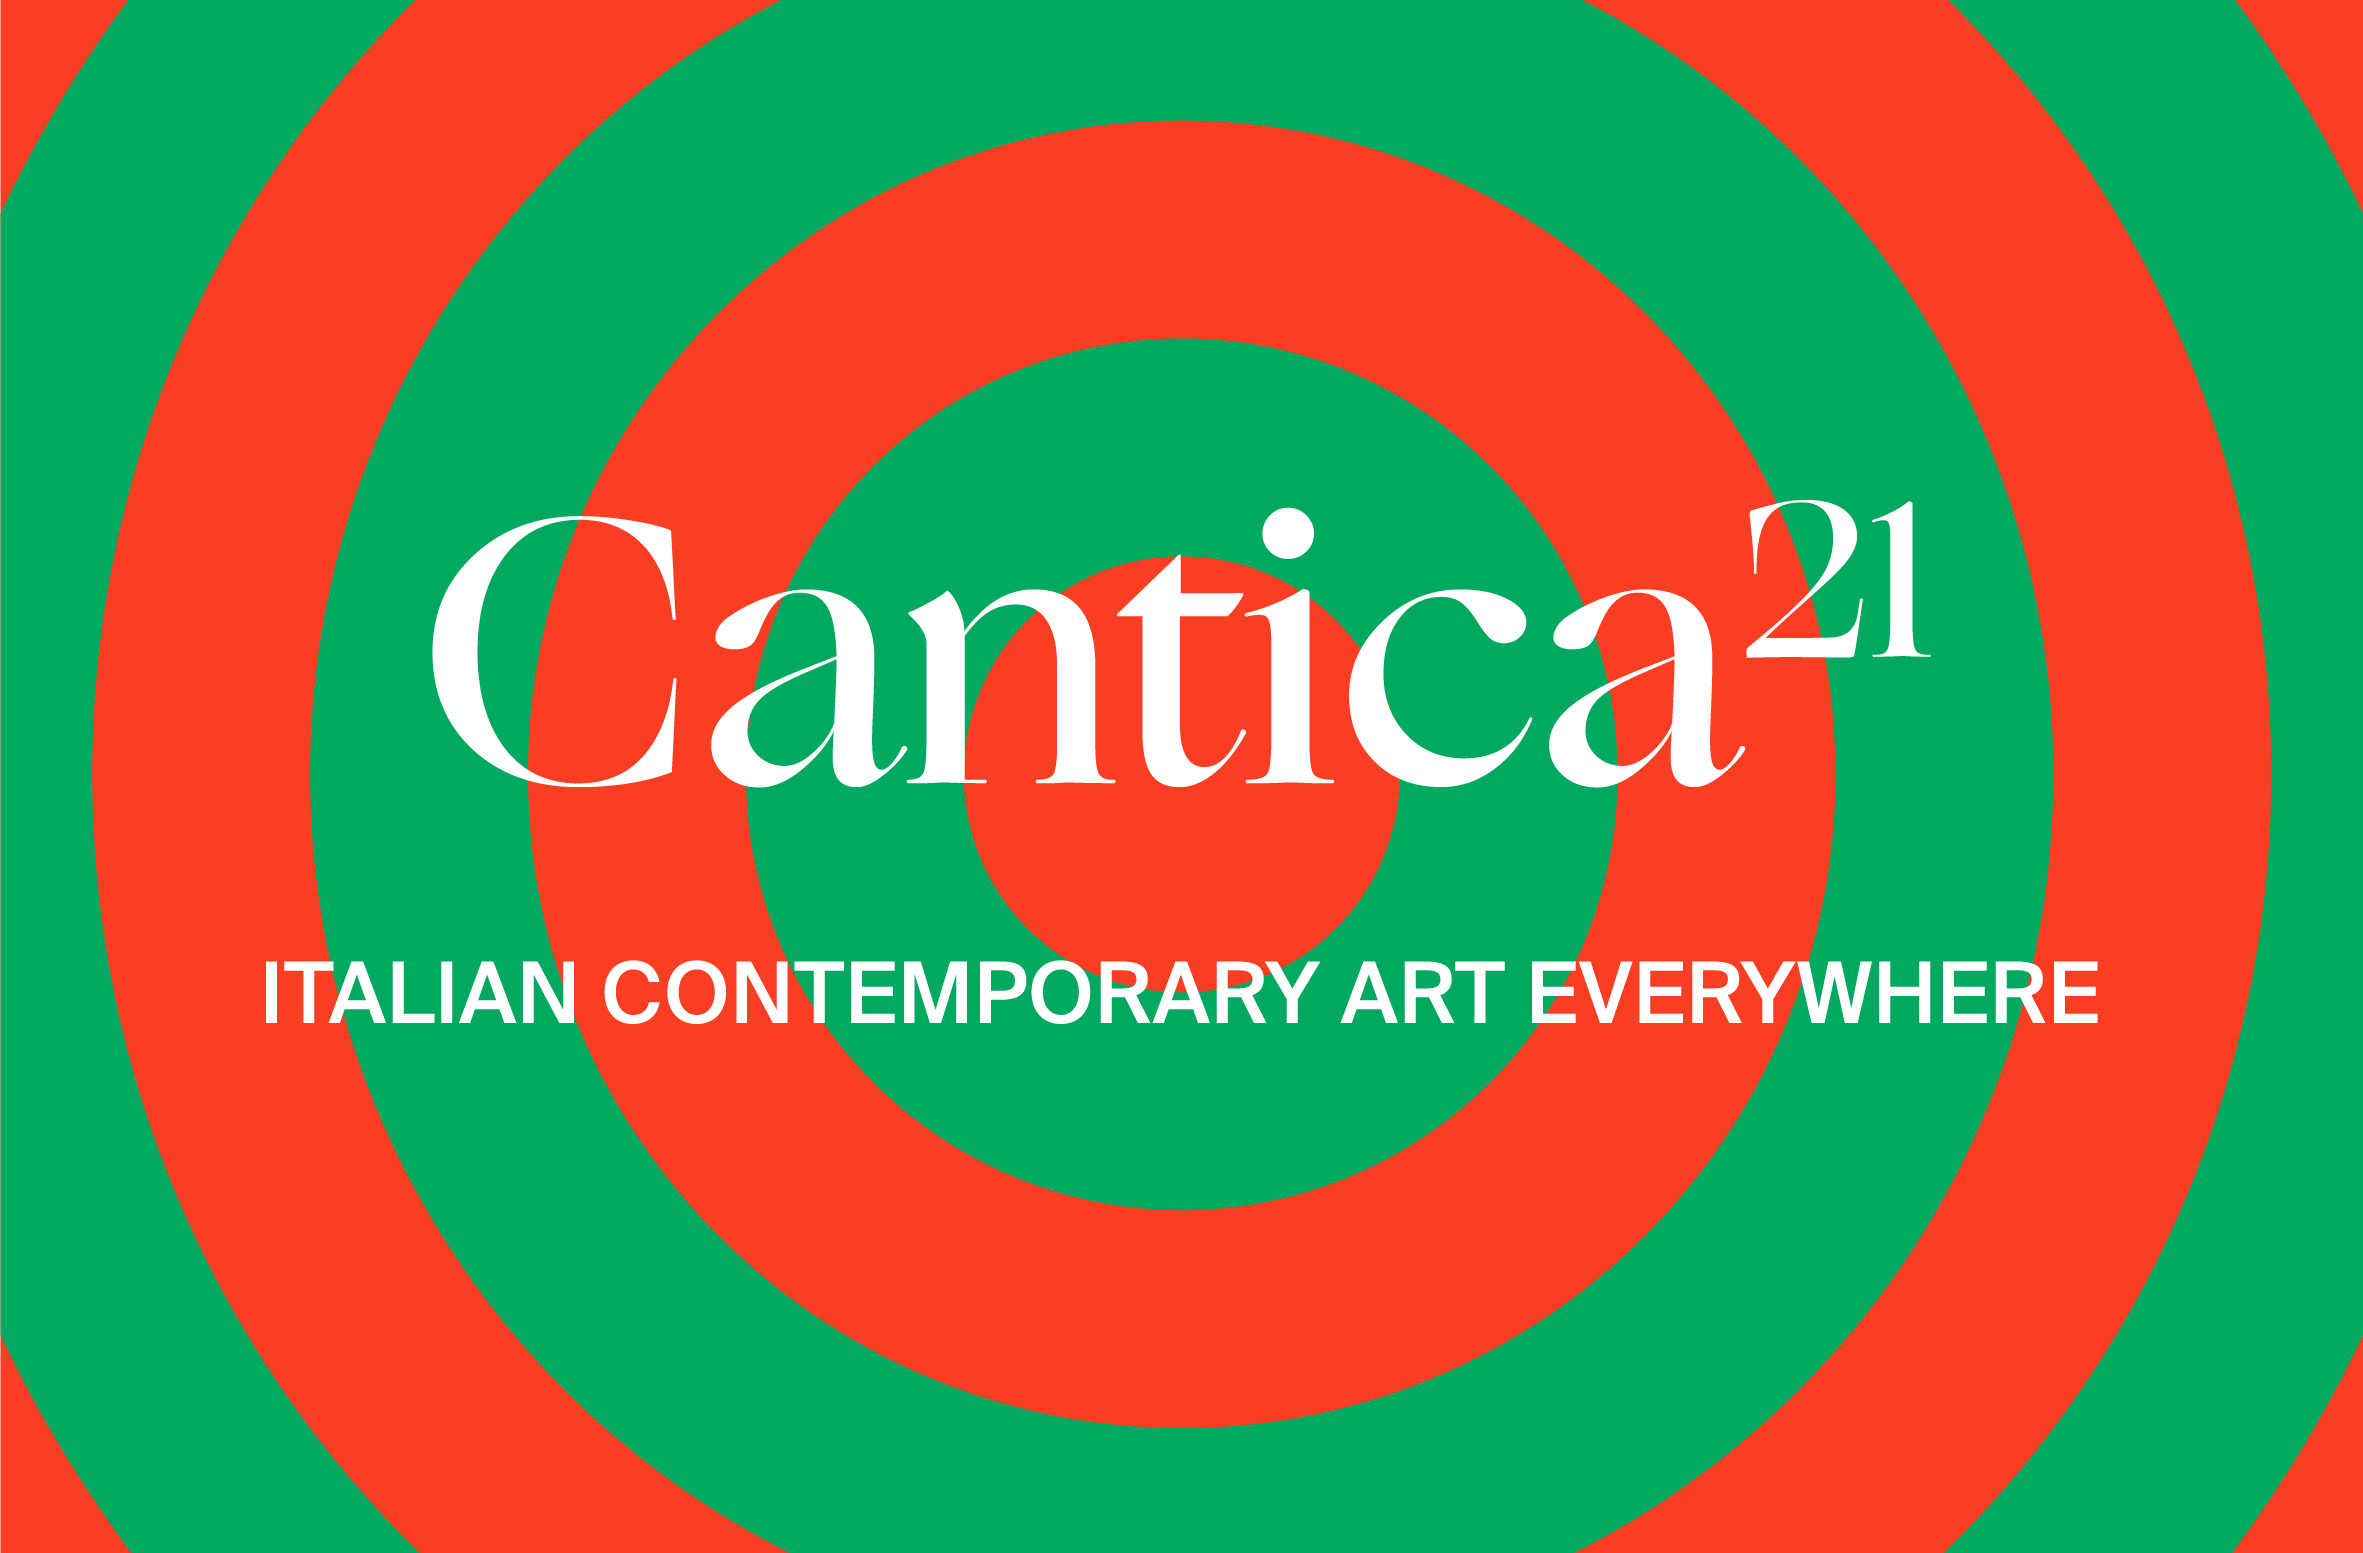 Cantica21, Italian Contemporary Art Everywhere /design by LeftLoft